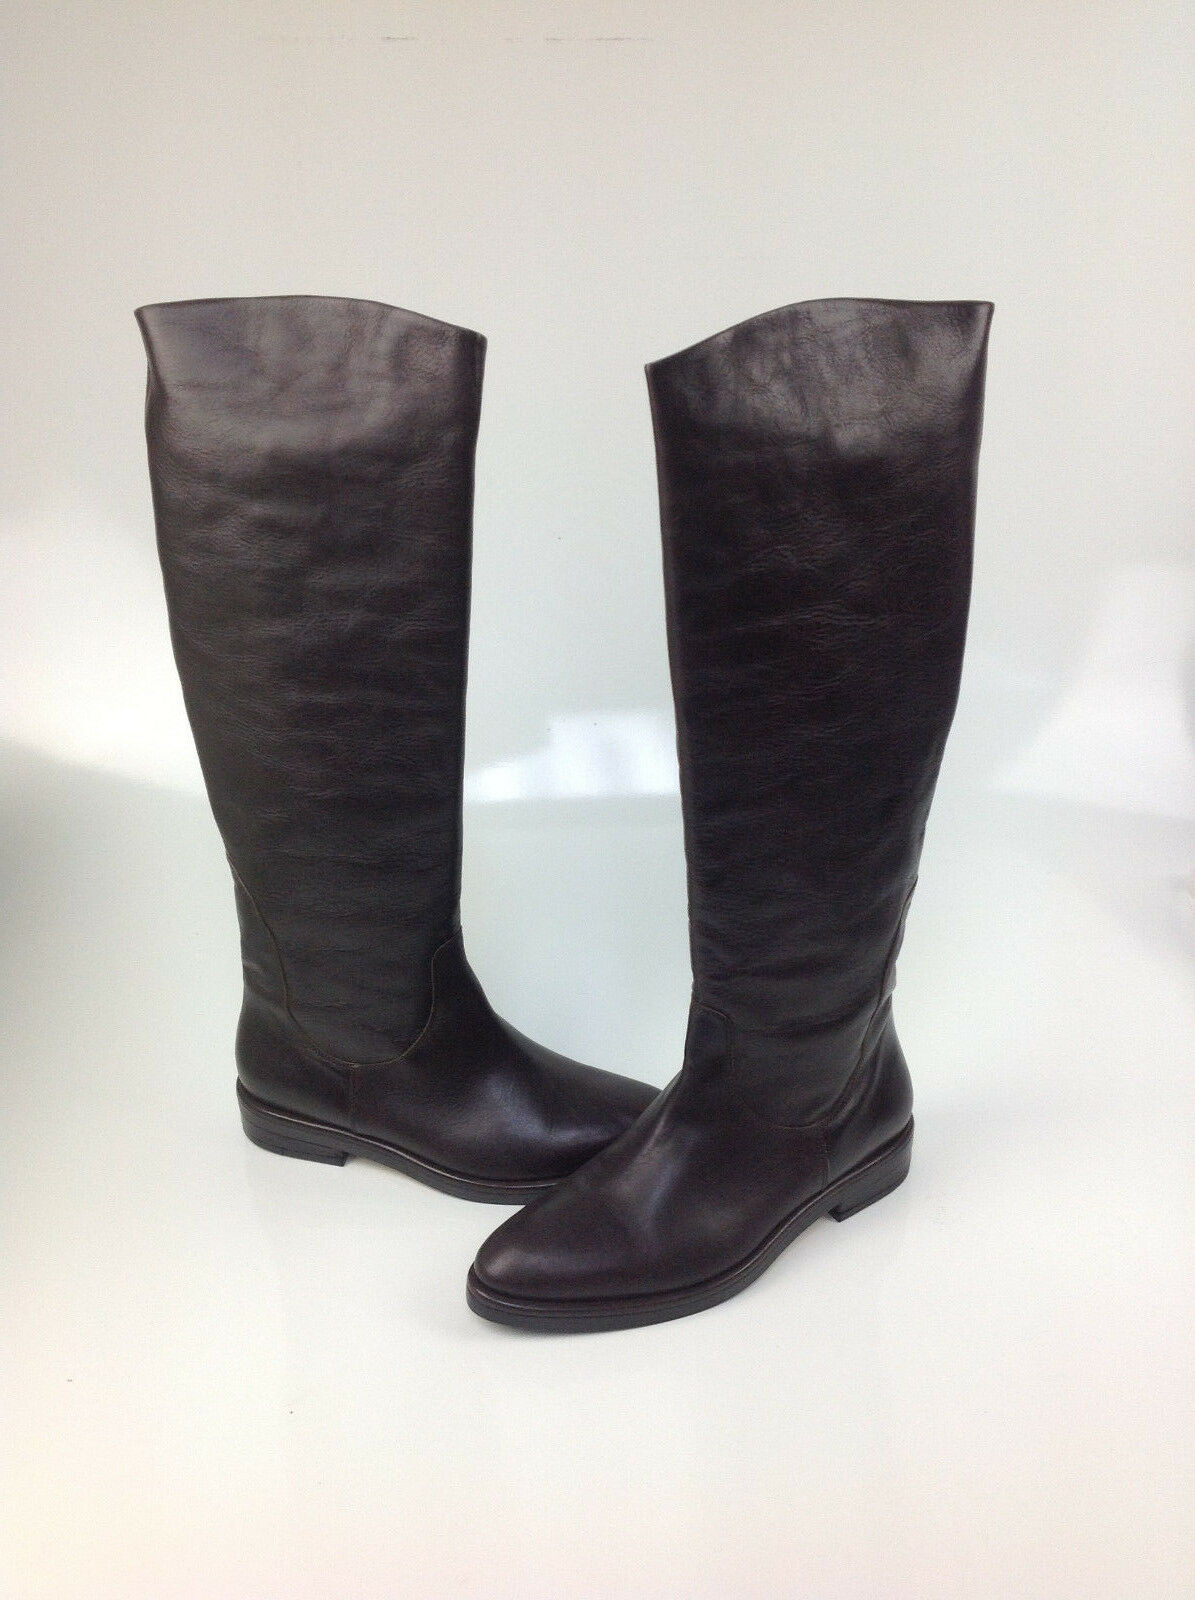 790 Roberto Del Carlo Sesia Pompei T Mgold Leather Boots, Size  EUR 39.5   US 9